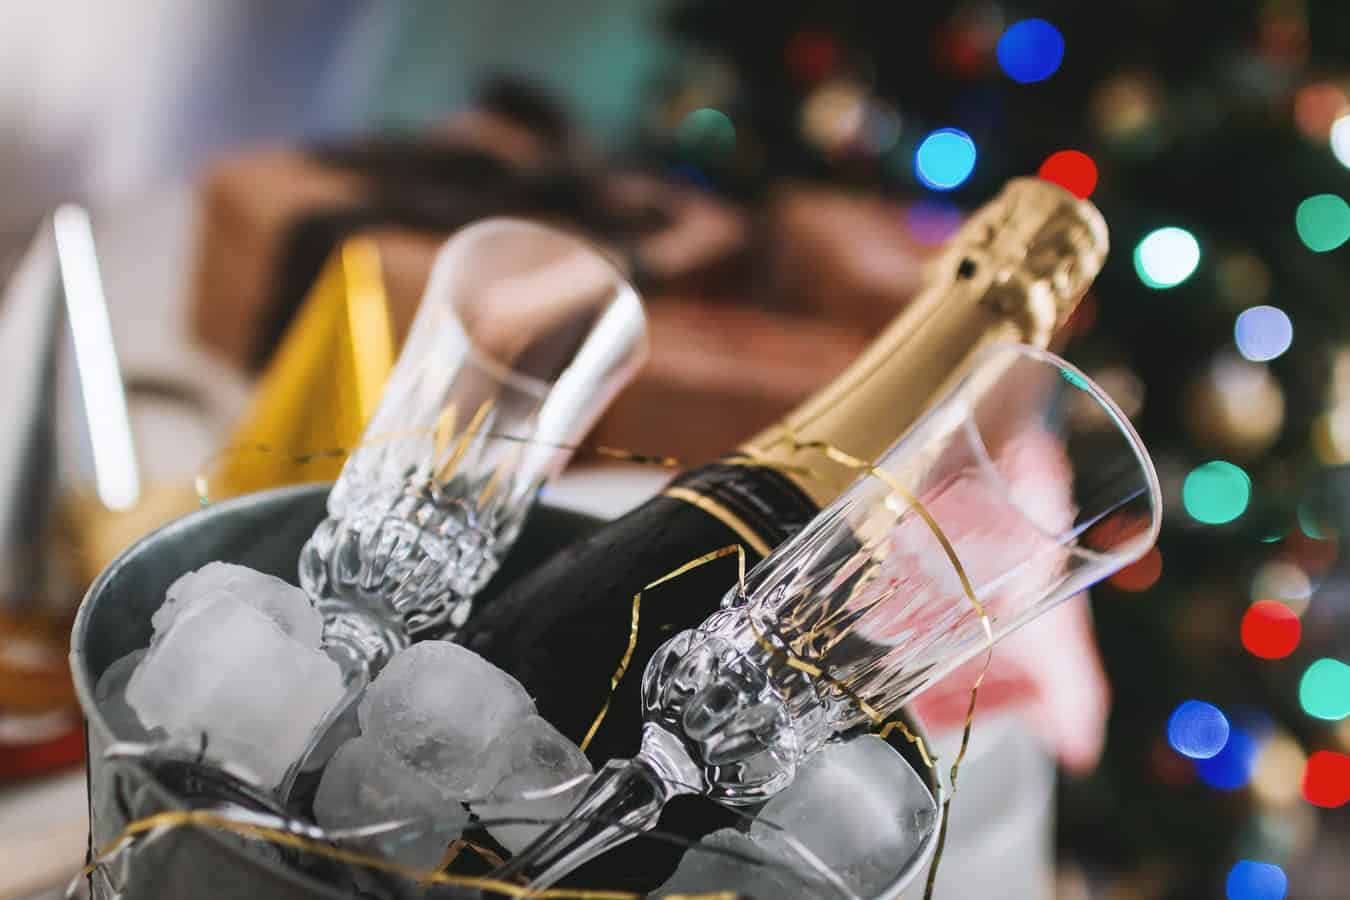 A bottle of champagne in a metal bucket with ice and glasses